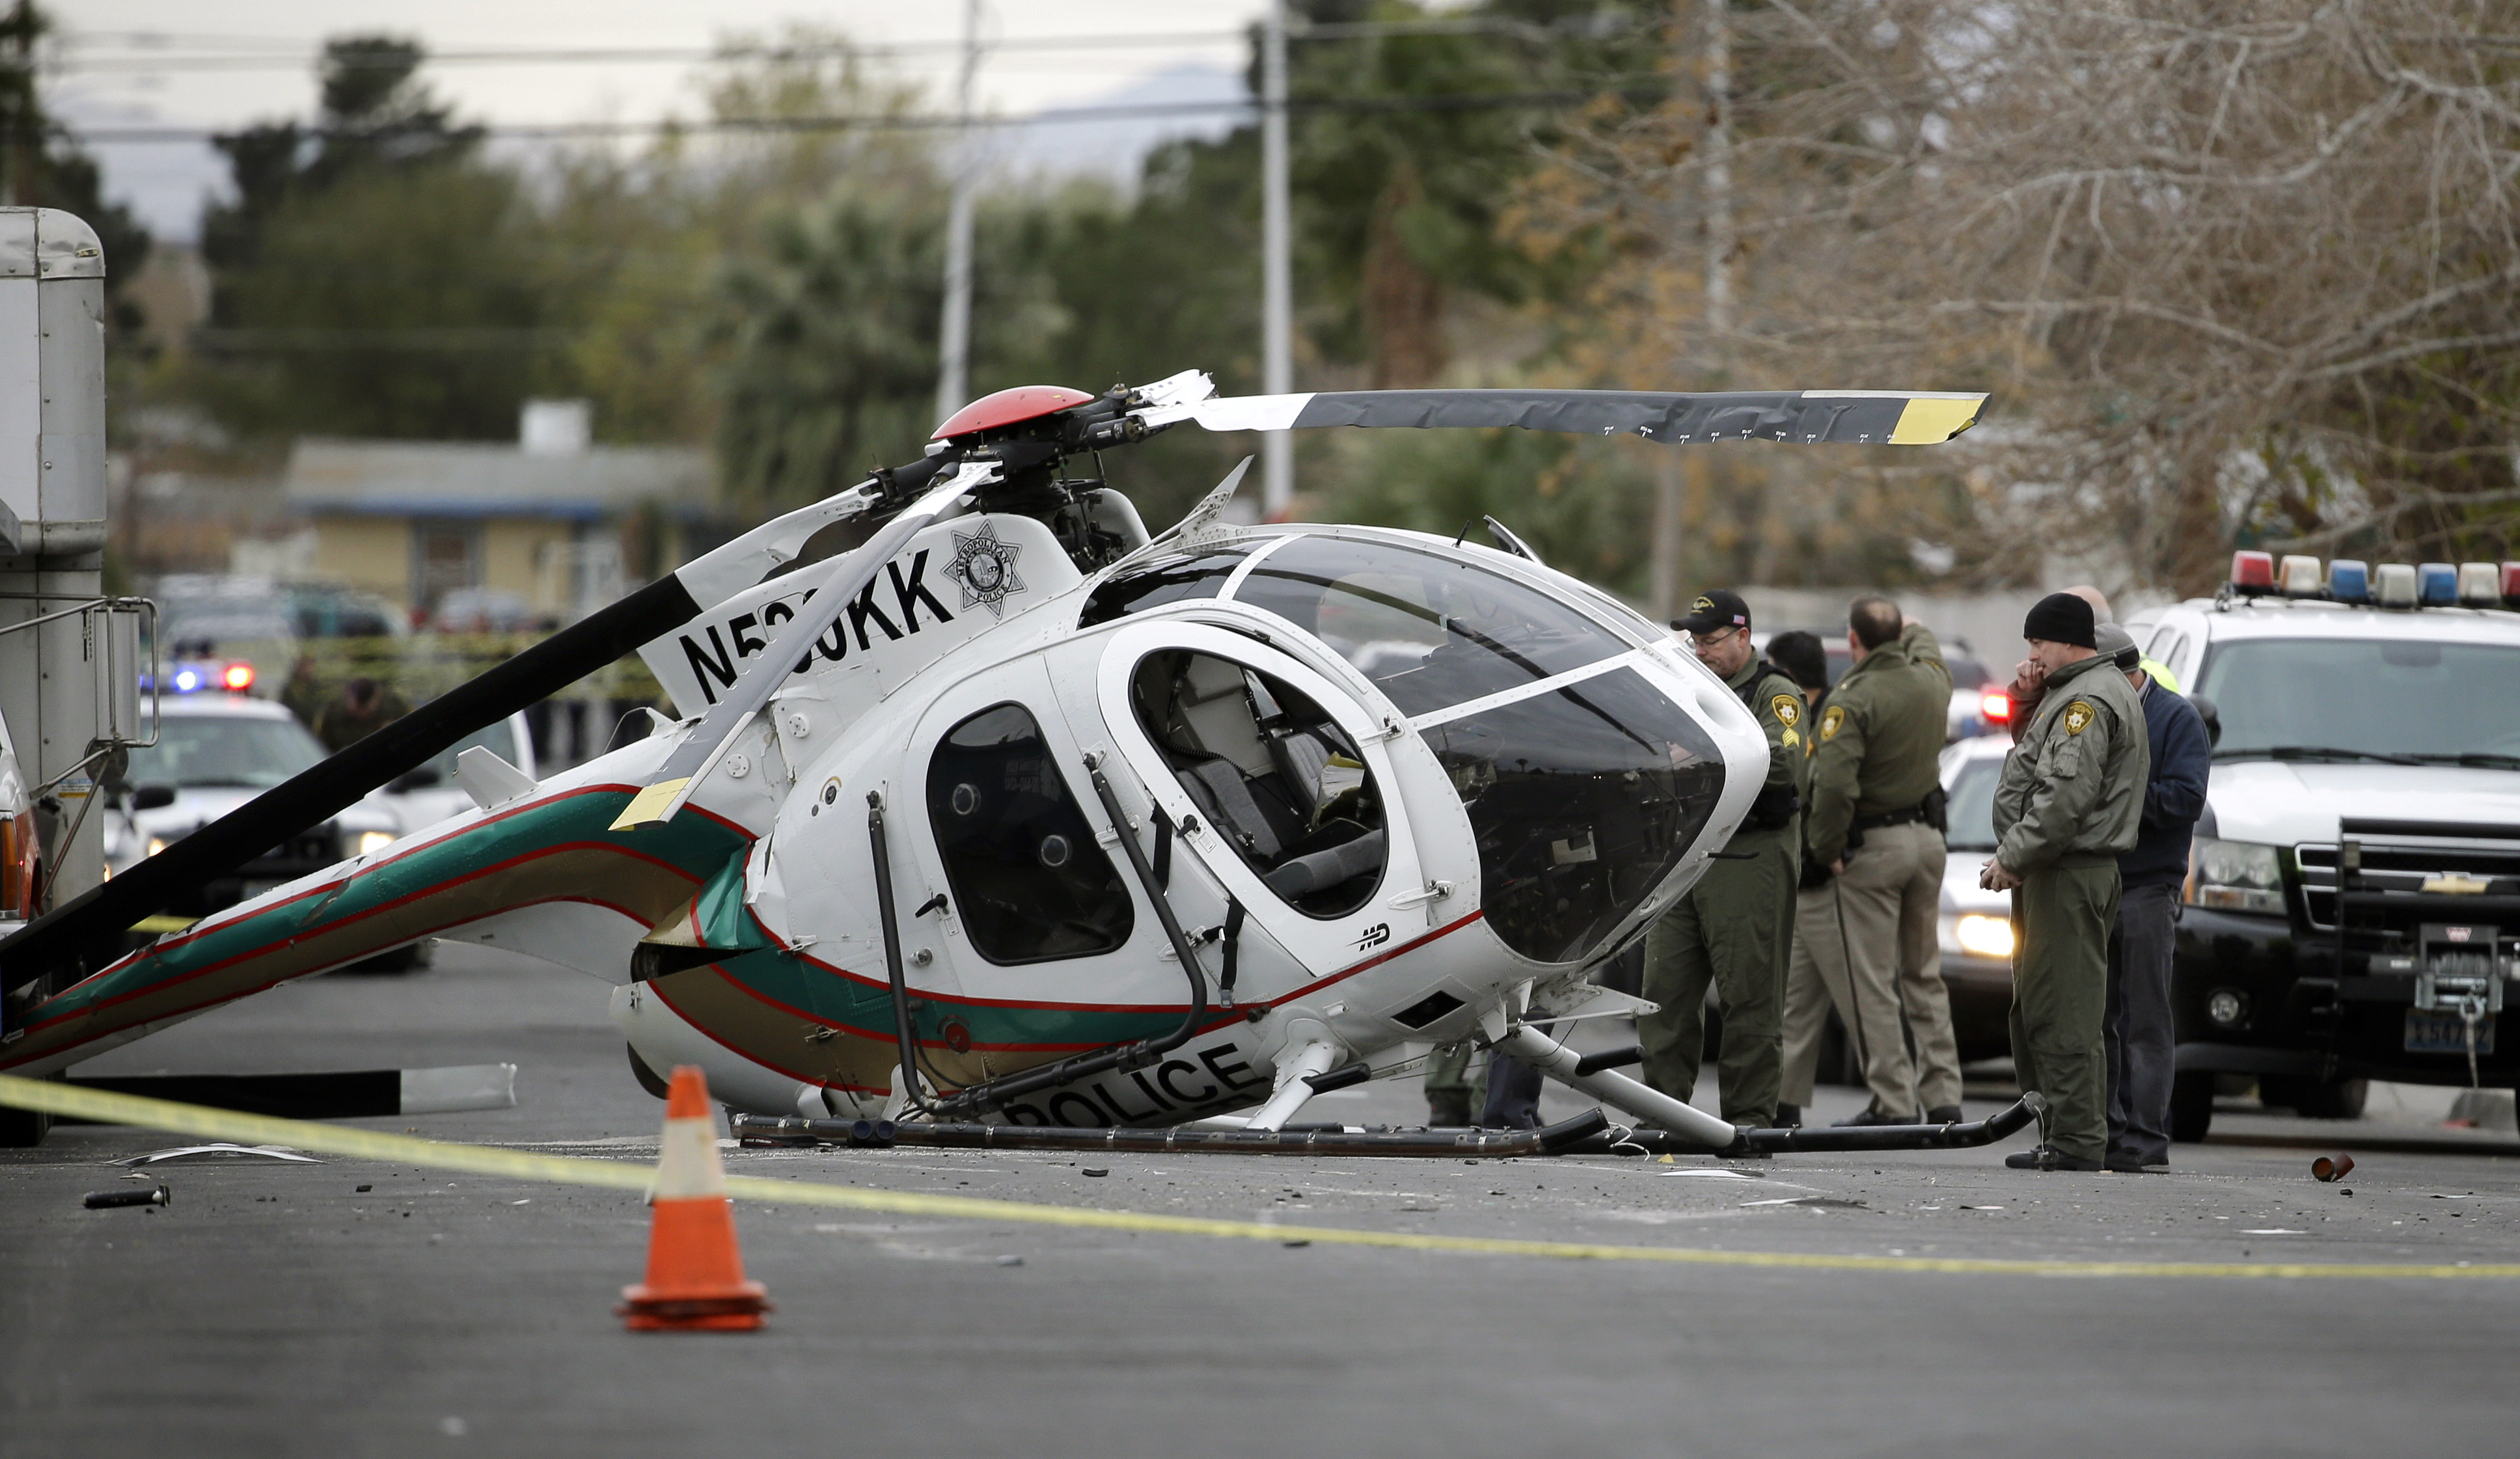 hospital helicopter crash with Las Vegas Nv 2 Officers Hurt In Vegas Police Helicopter Crash on Superbugs Kill 33000 In Europe Every Year together with File Airlift from 26 December 2006 Car Crash   1 in addition News Alert White Hills Az Fatal Multi Vehicle Crash Along Northbound U S Route 93 moreover Rescue Helicopter further F1 Ch ion Michael Schumacher In Critical Condition After French Alps Ski Accident 1.